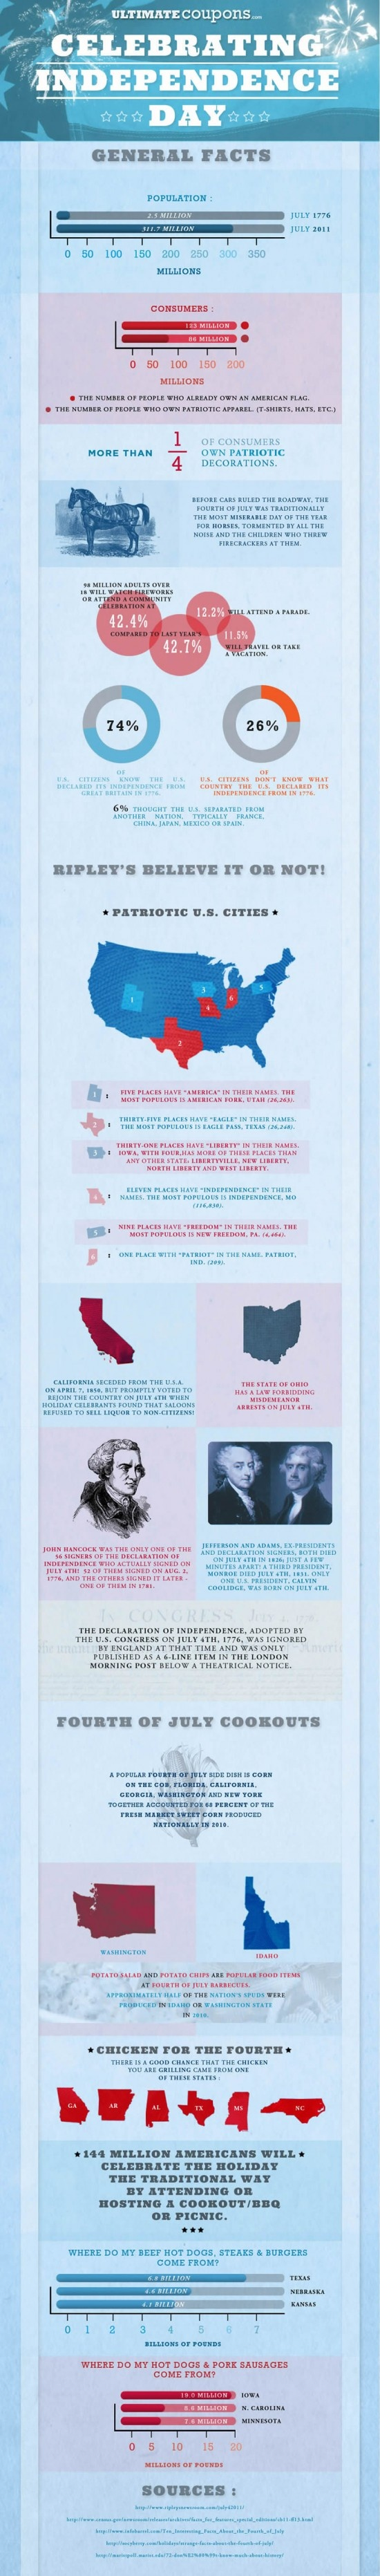 4th of july history fun facts